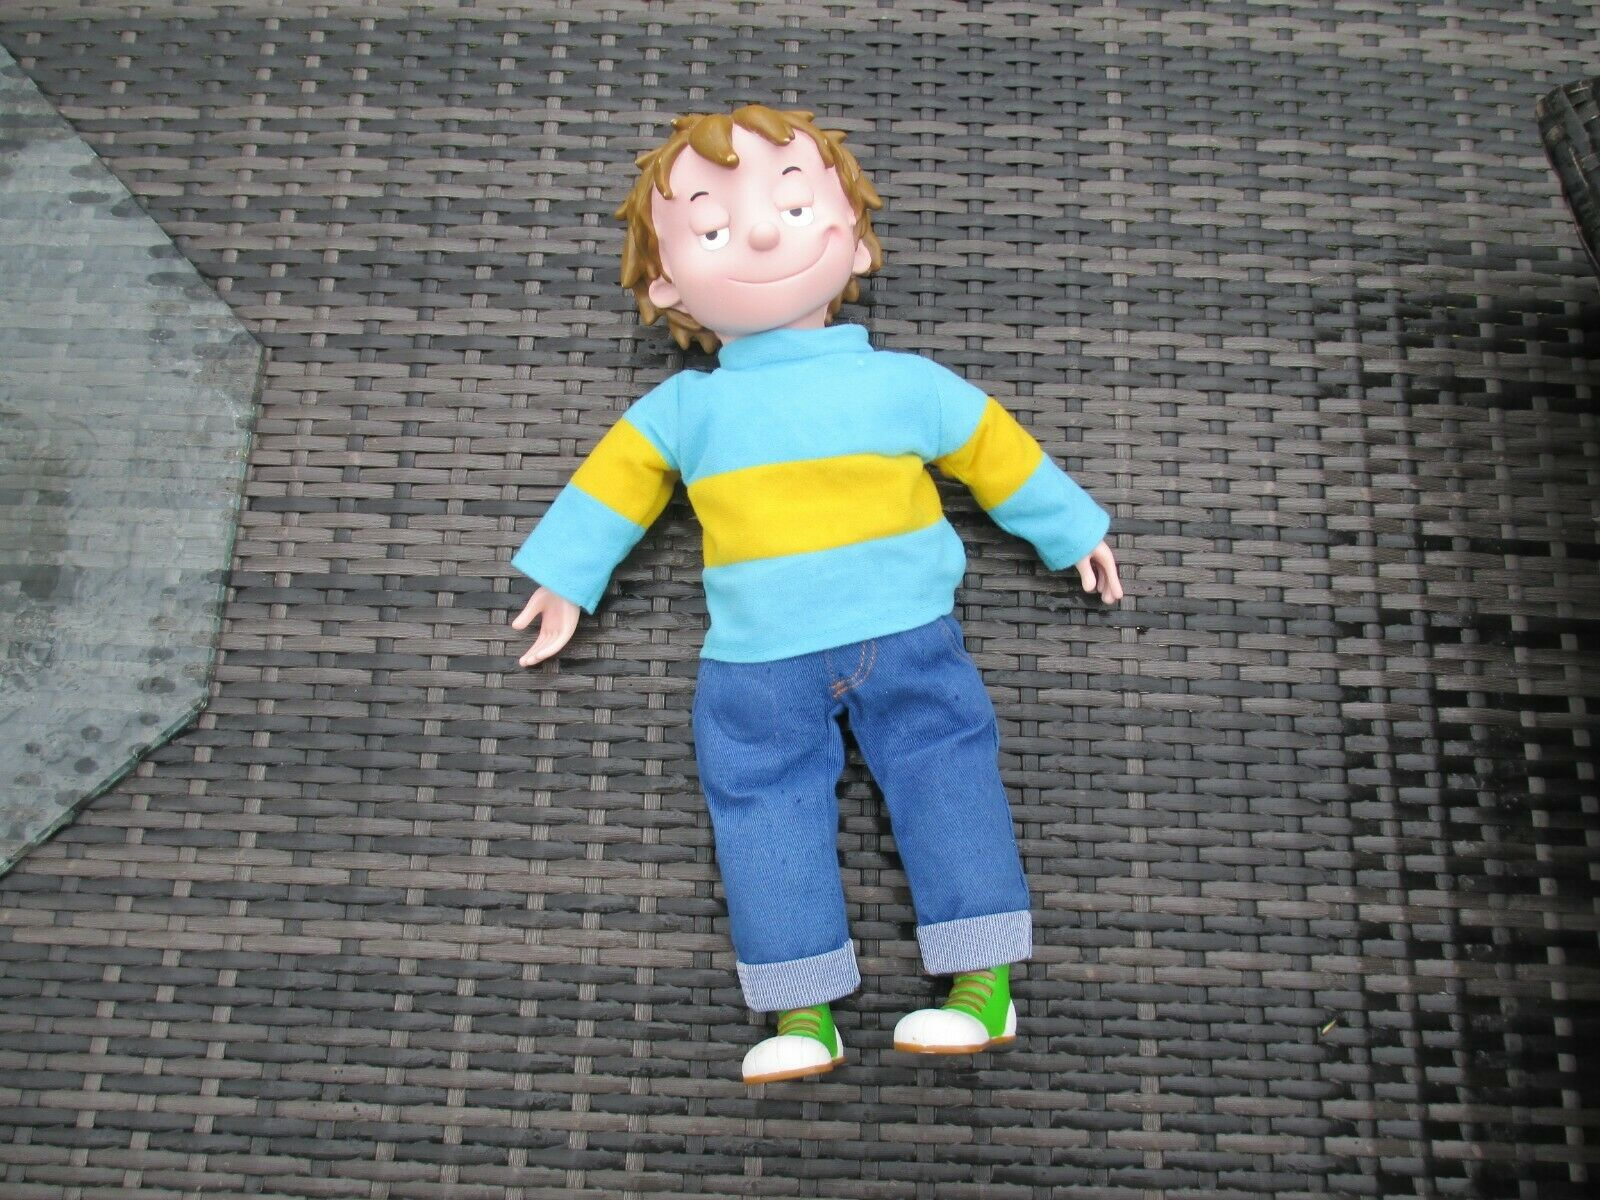 Genuine 2008 Horrid Horrid Horrid Henry - Talking Interactive Plush Doll Toy Figure 17  Rare acf